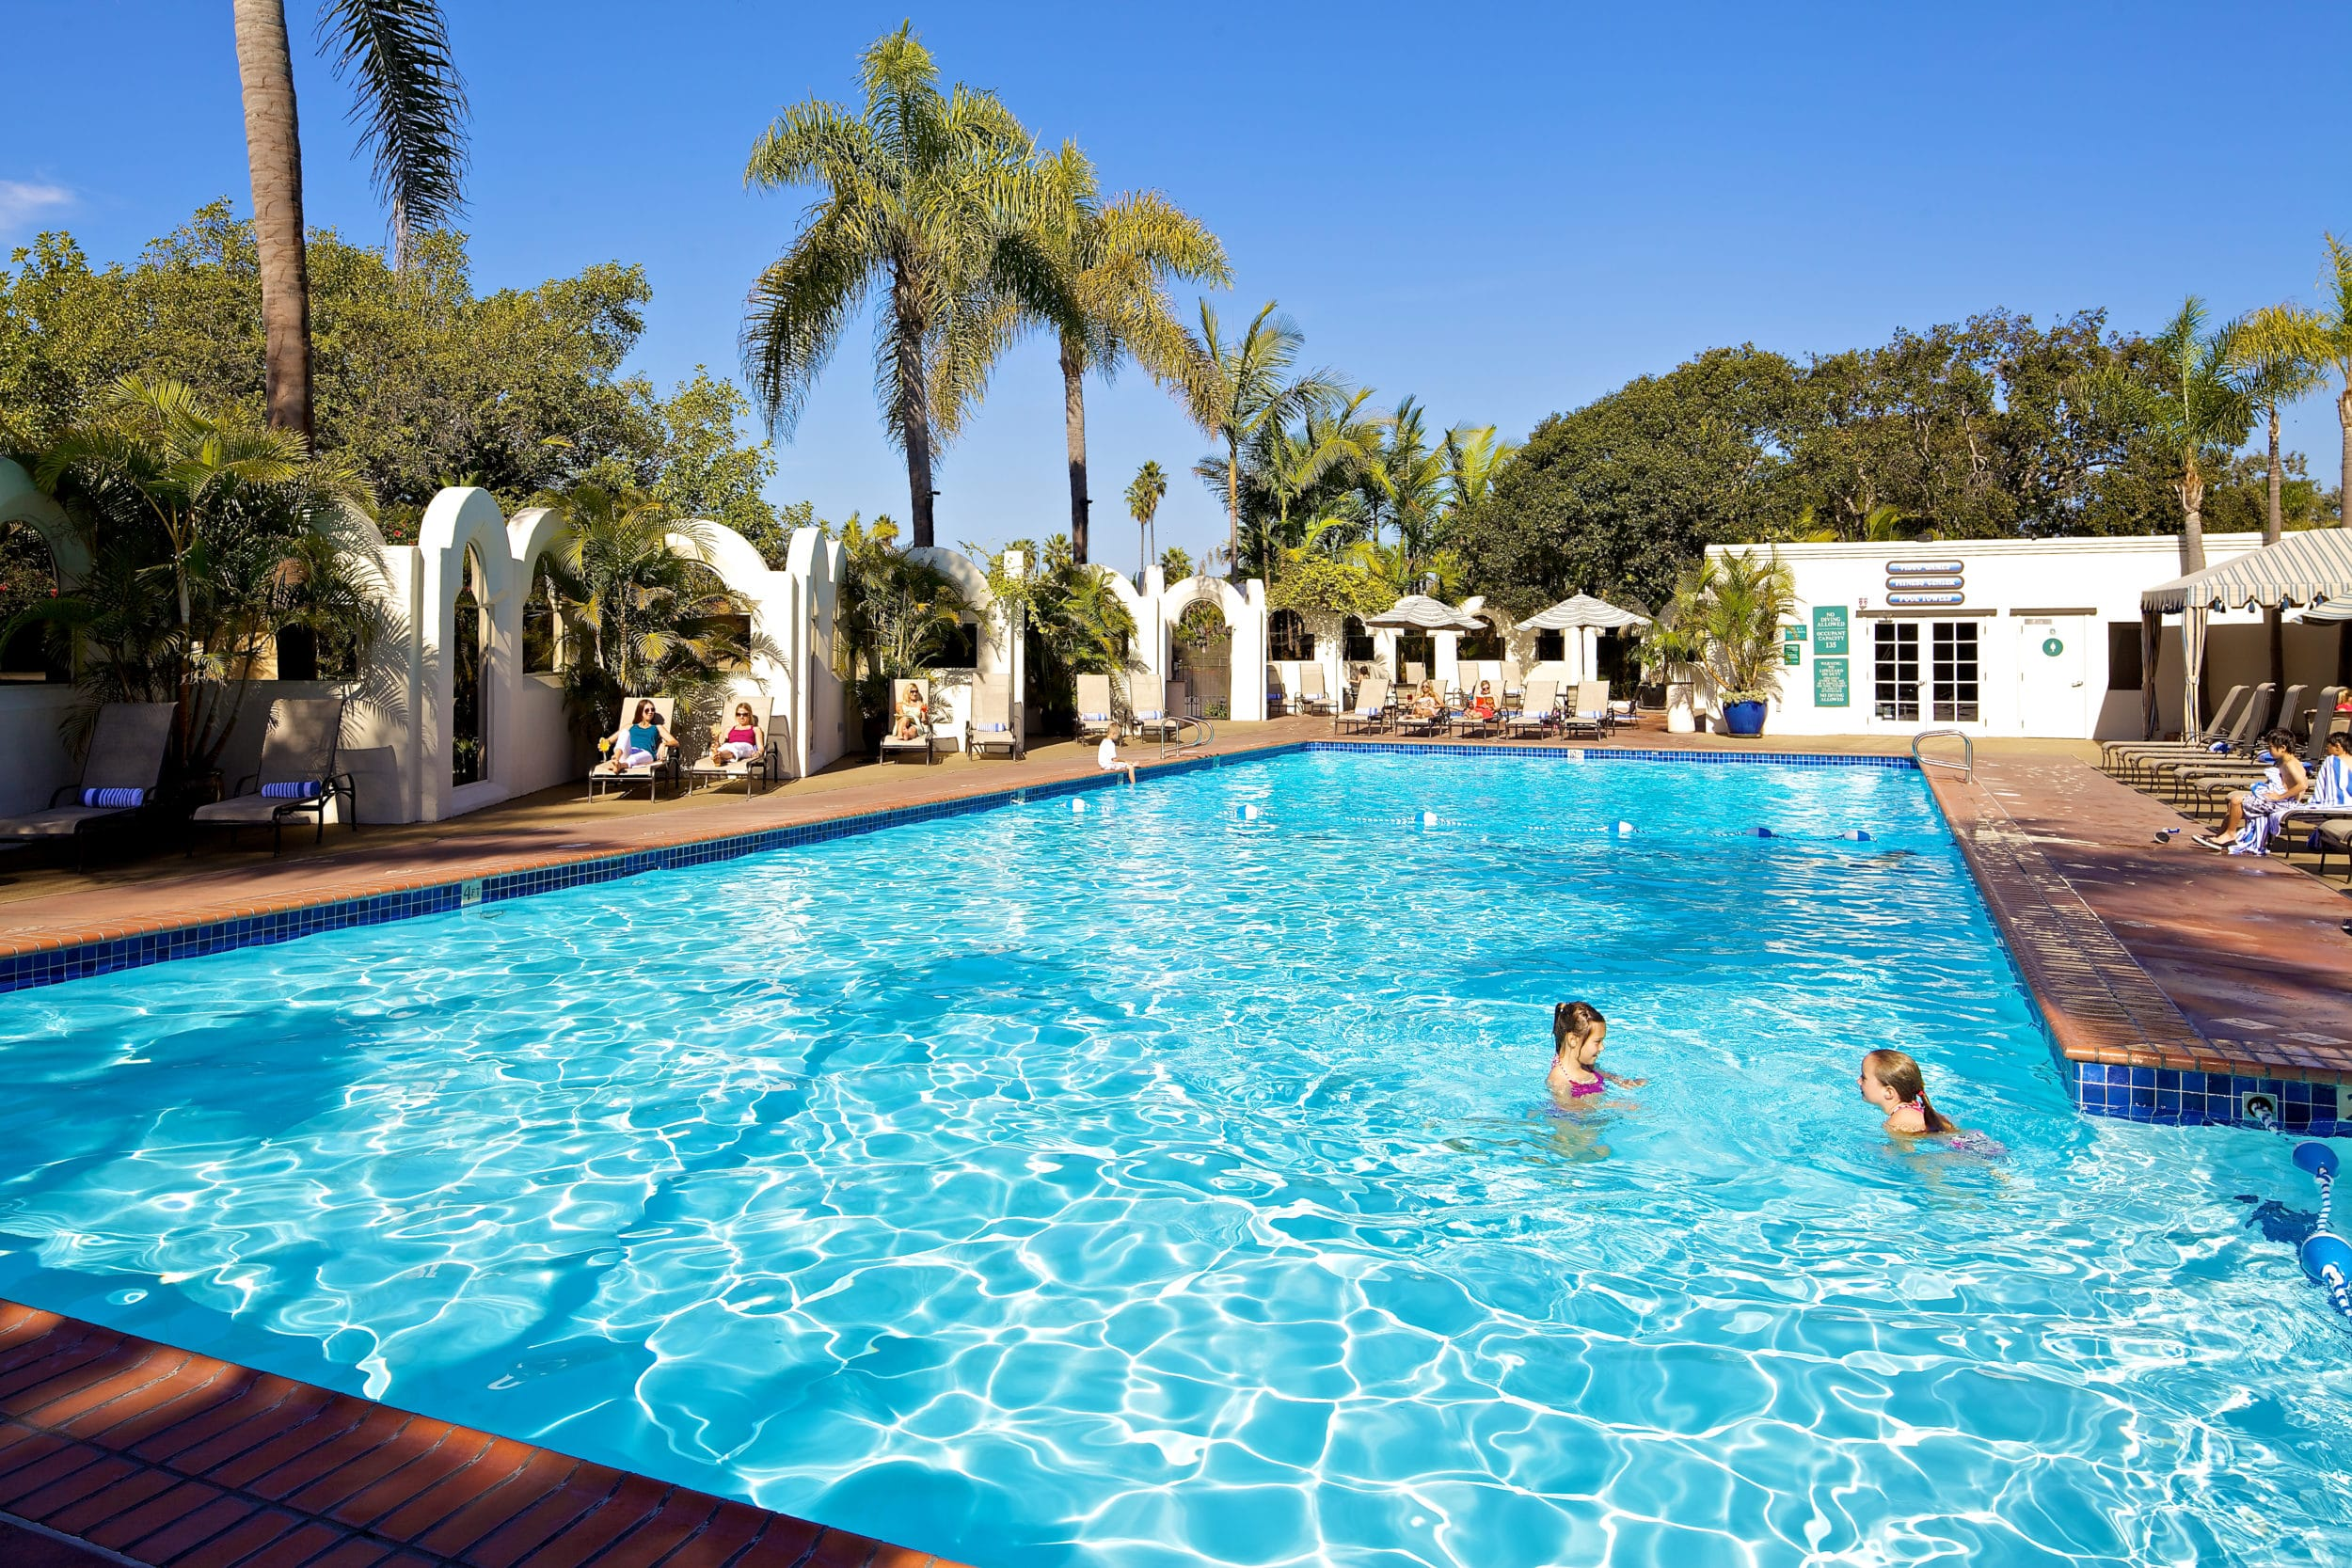 Two kids swim in the Bahia Resort Hotel's outdoor swimming pool on a sunny day.